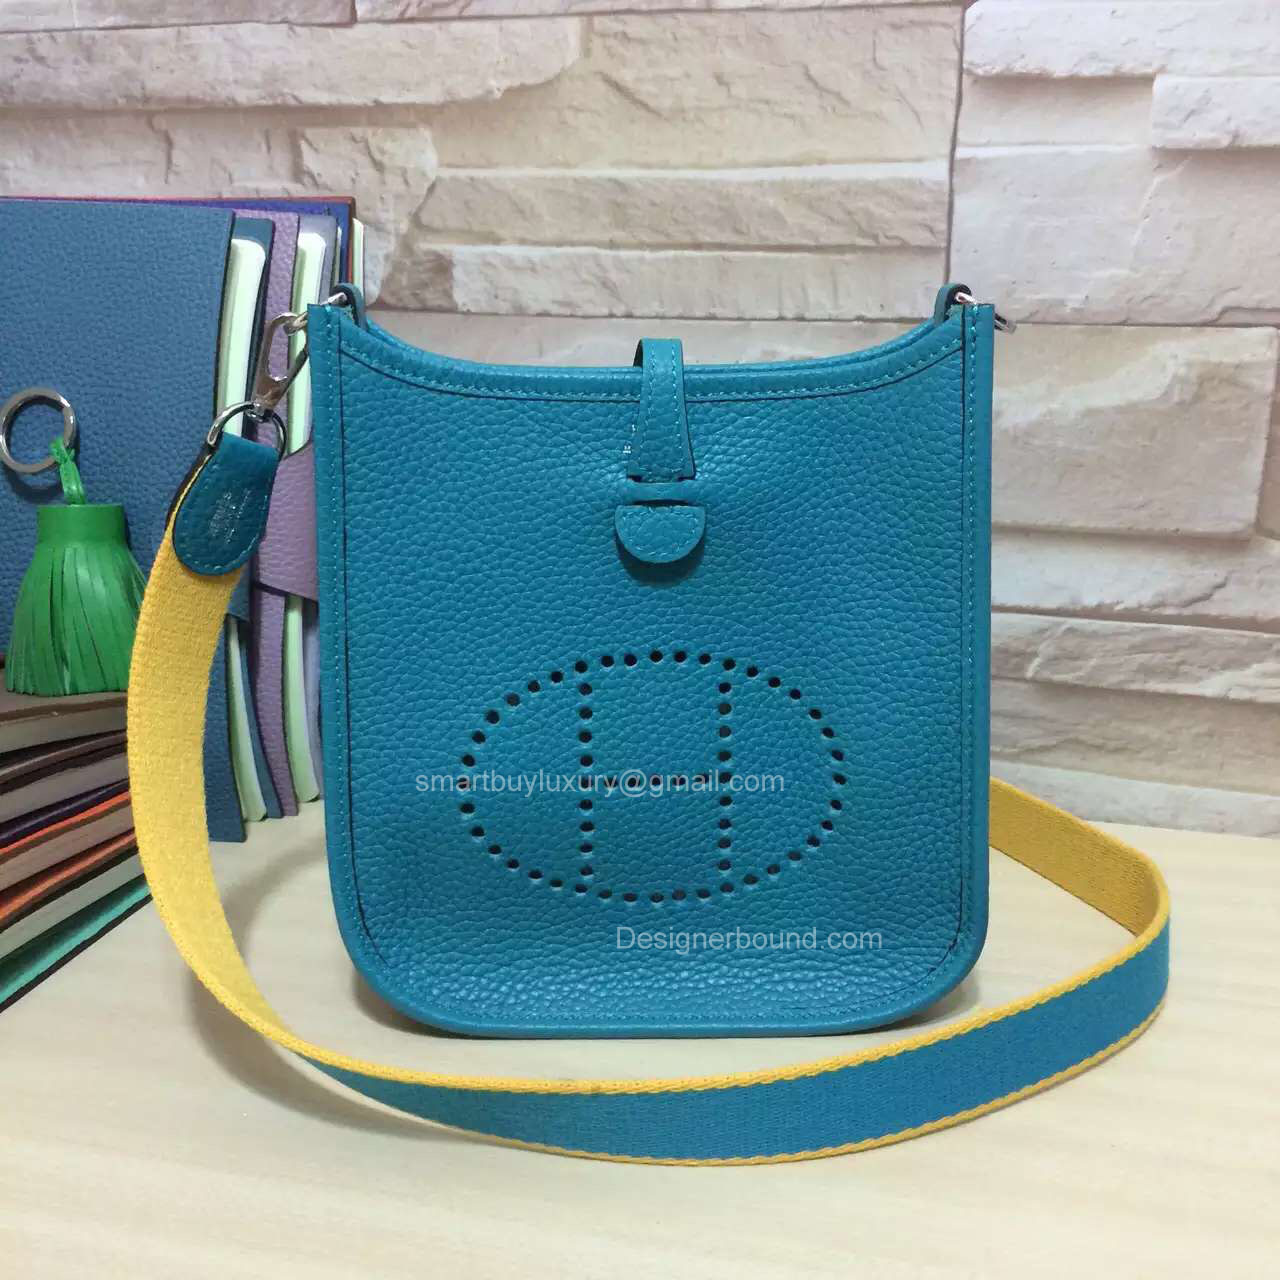 Hermes Evelyne III Bag in Blue Togo Leather TPM